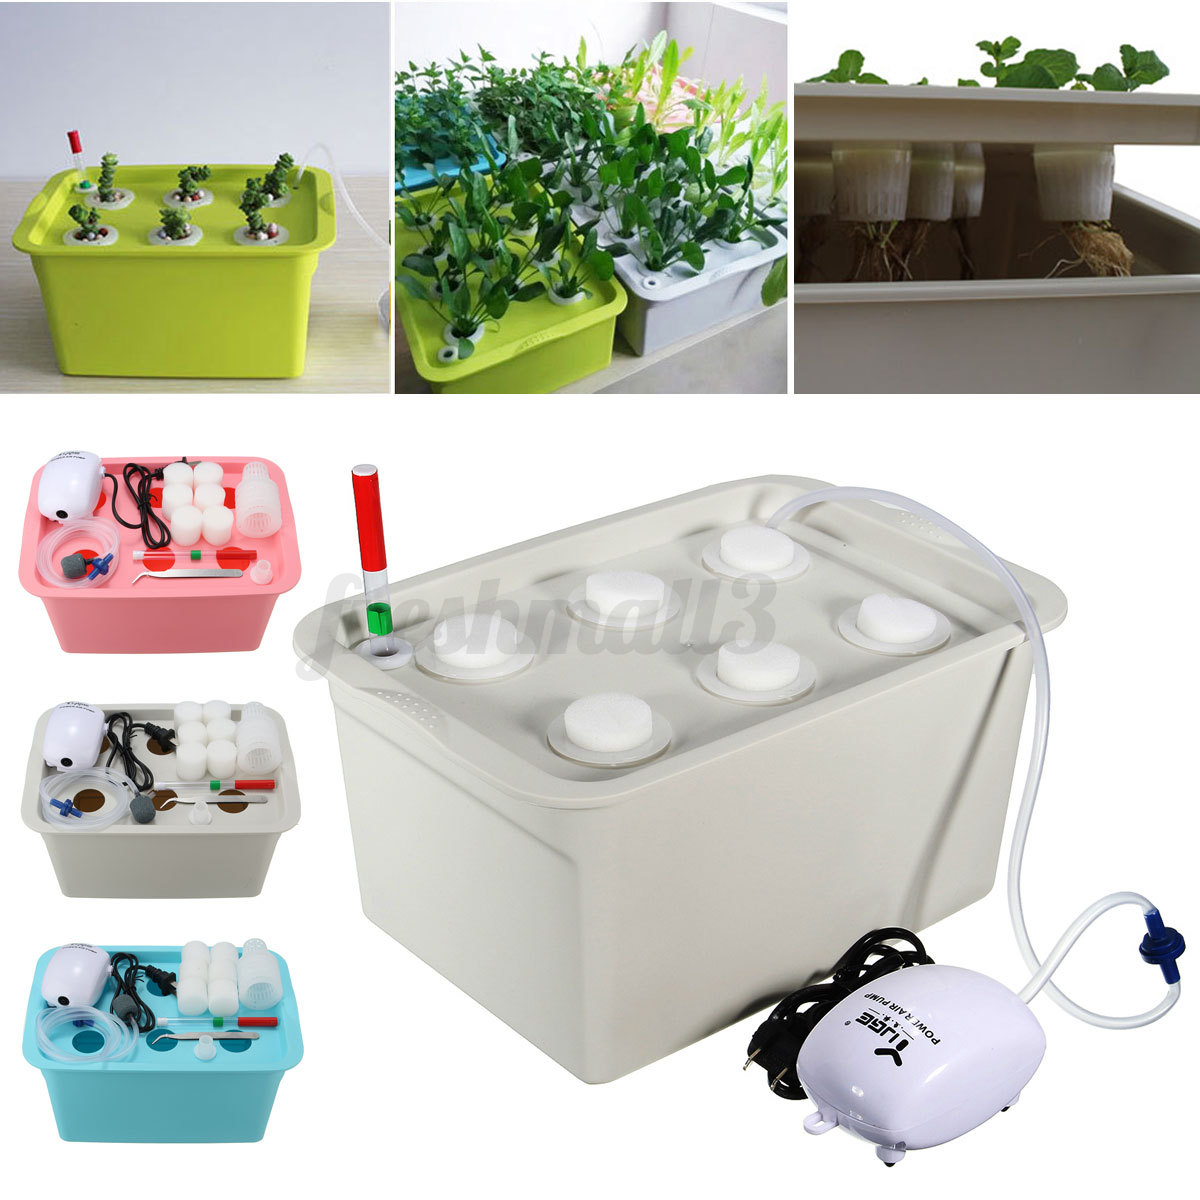 6 Plant Grow Site Deep Water Culture Hydroponic System Bubble Tub ...